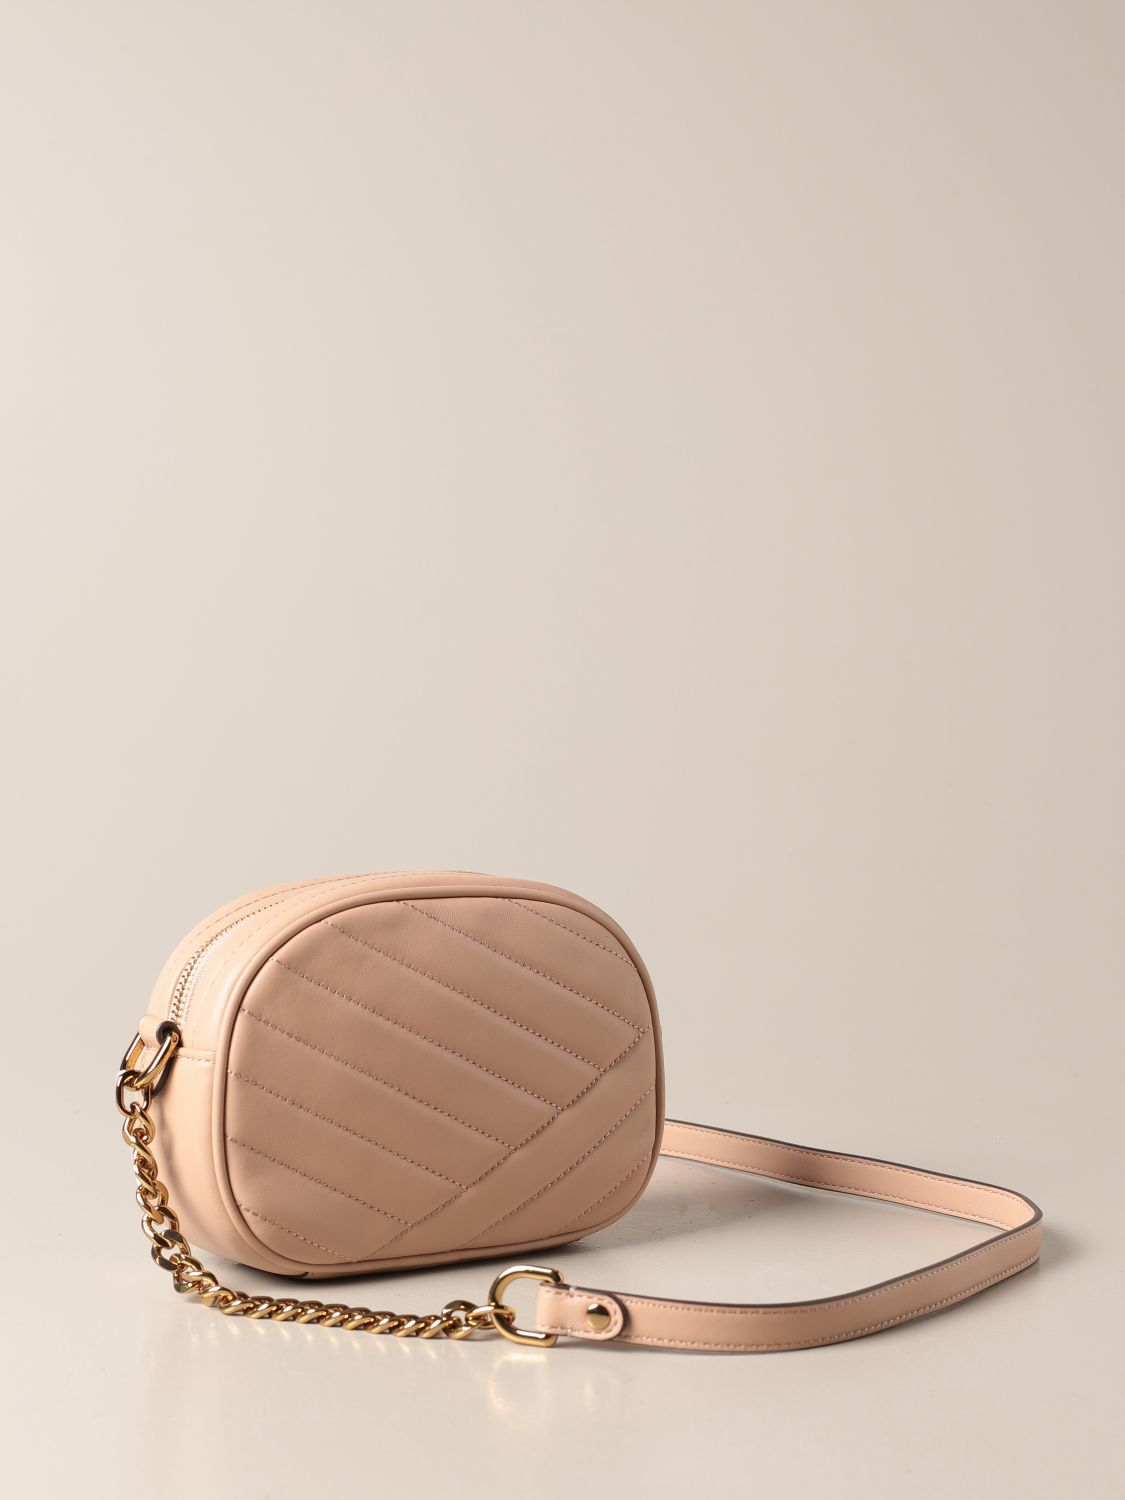 Crossbody bags Tory Burch: Kira Tory Burch bag in quilted leather sand 2